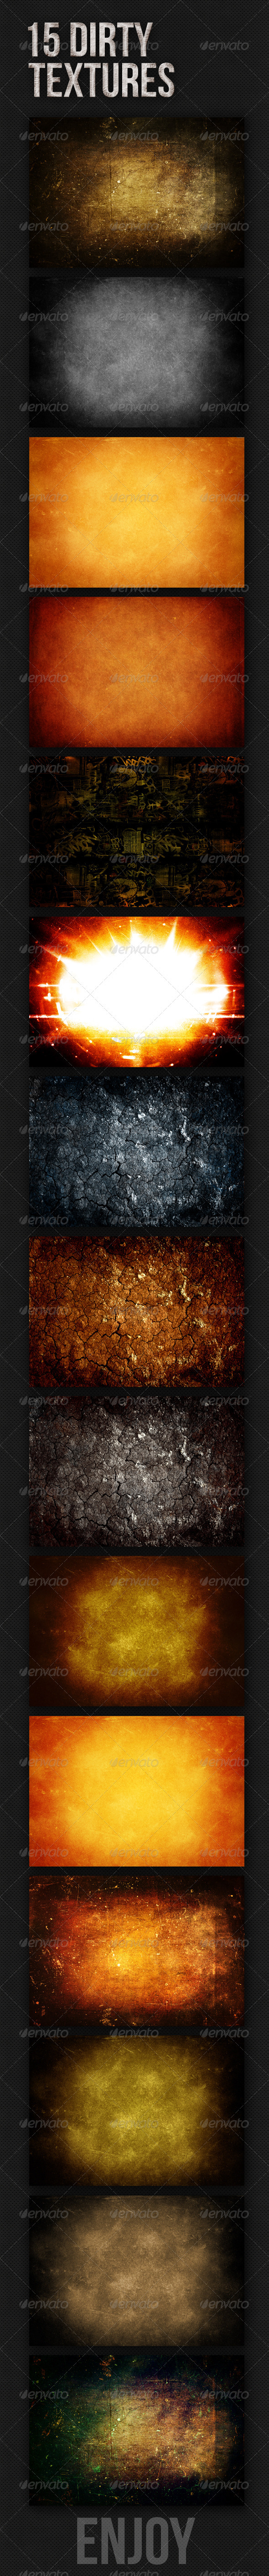 15 Dirty Textures by MikiMikibo